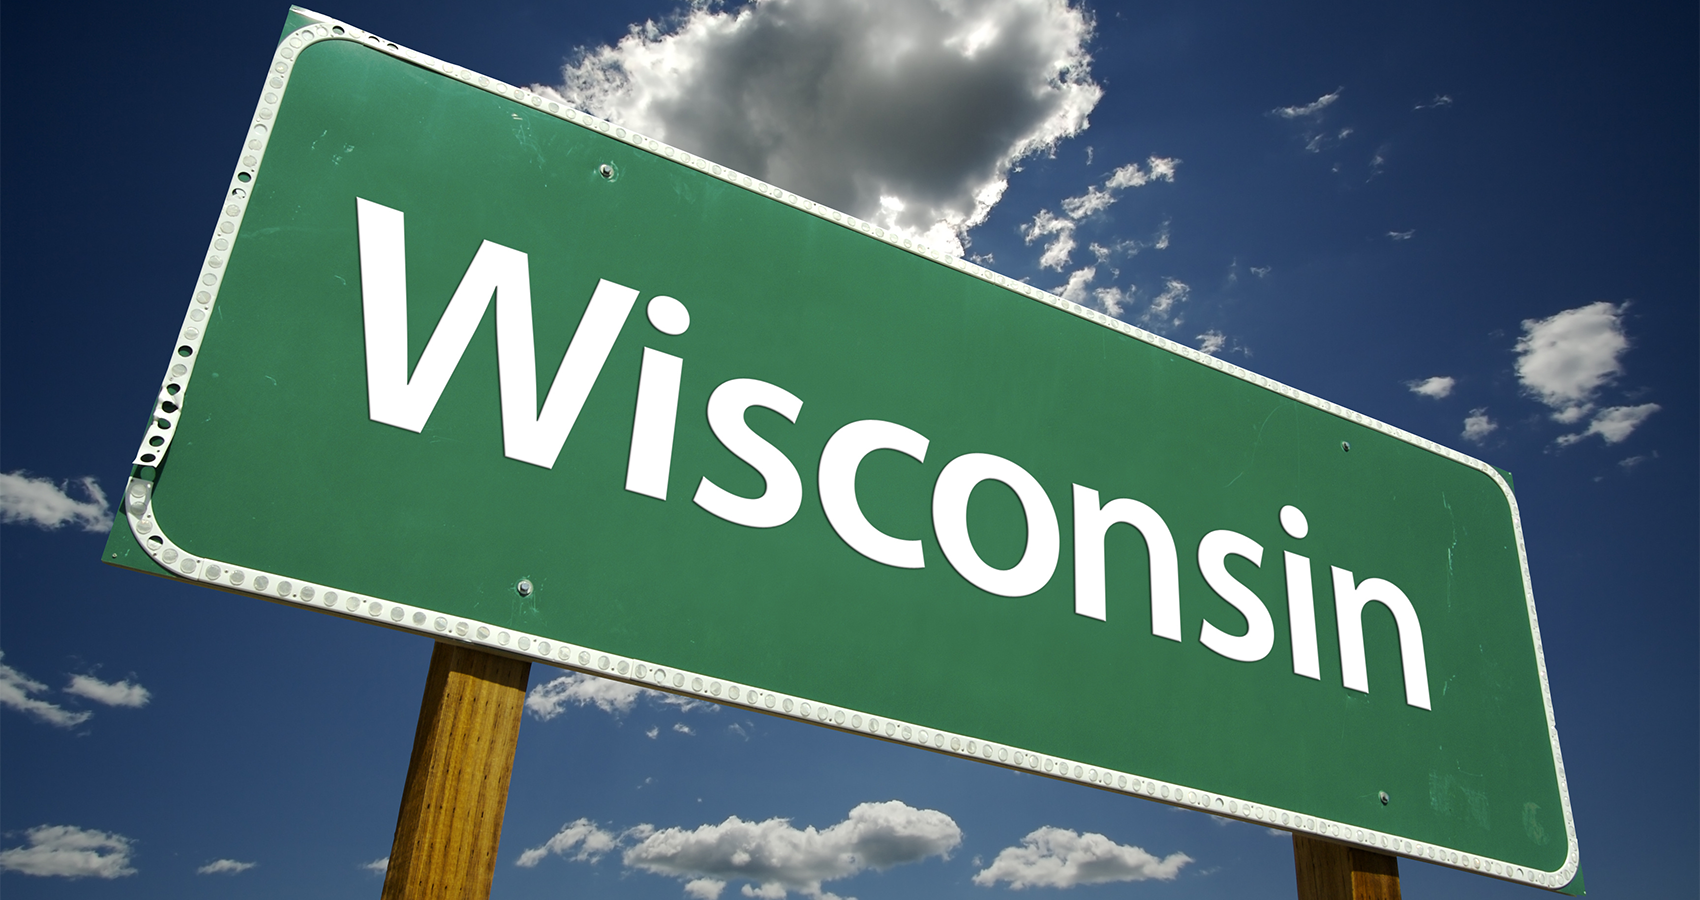 Wisconsin Visitor Information